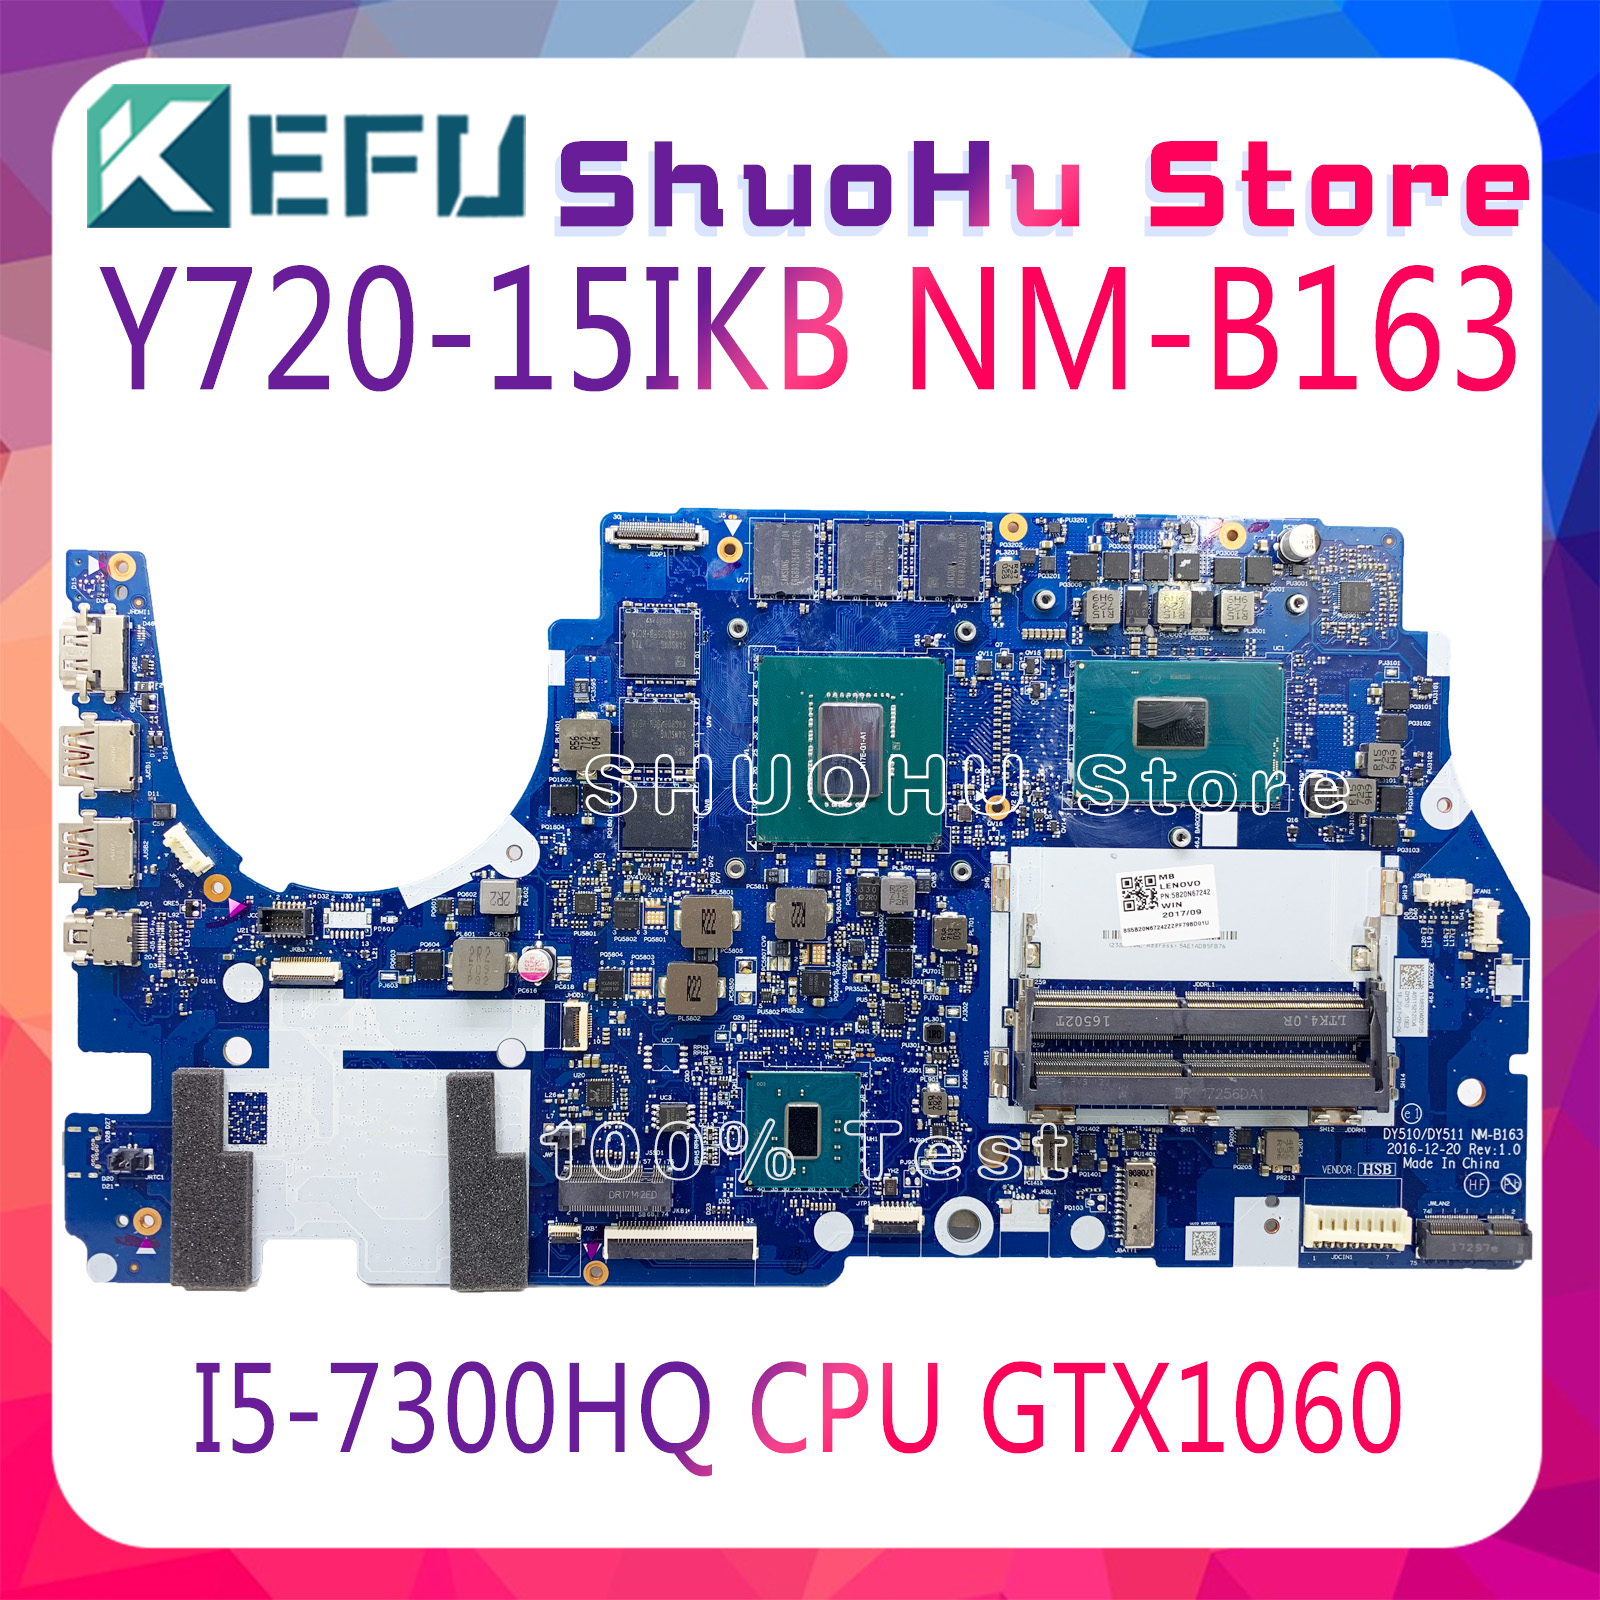 DY510/DY511 NM-B163 MOTHERBOARD FIT for Lenovo Y720-15IKB R720 notebook motherboard CPU <font><b>i5</b></font> <font><b>7300HQ</b></font> GTX1060M 6G original 100% test image